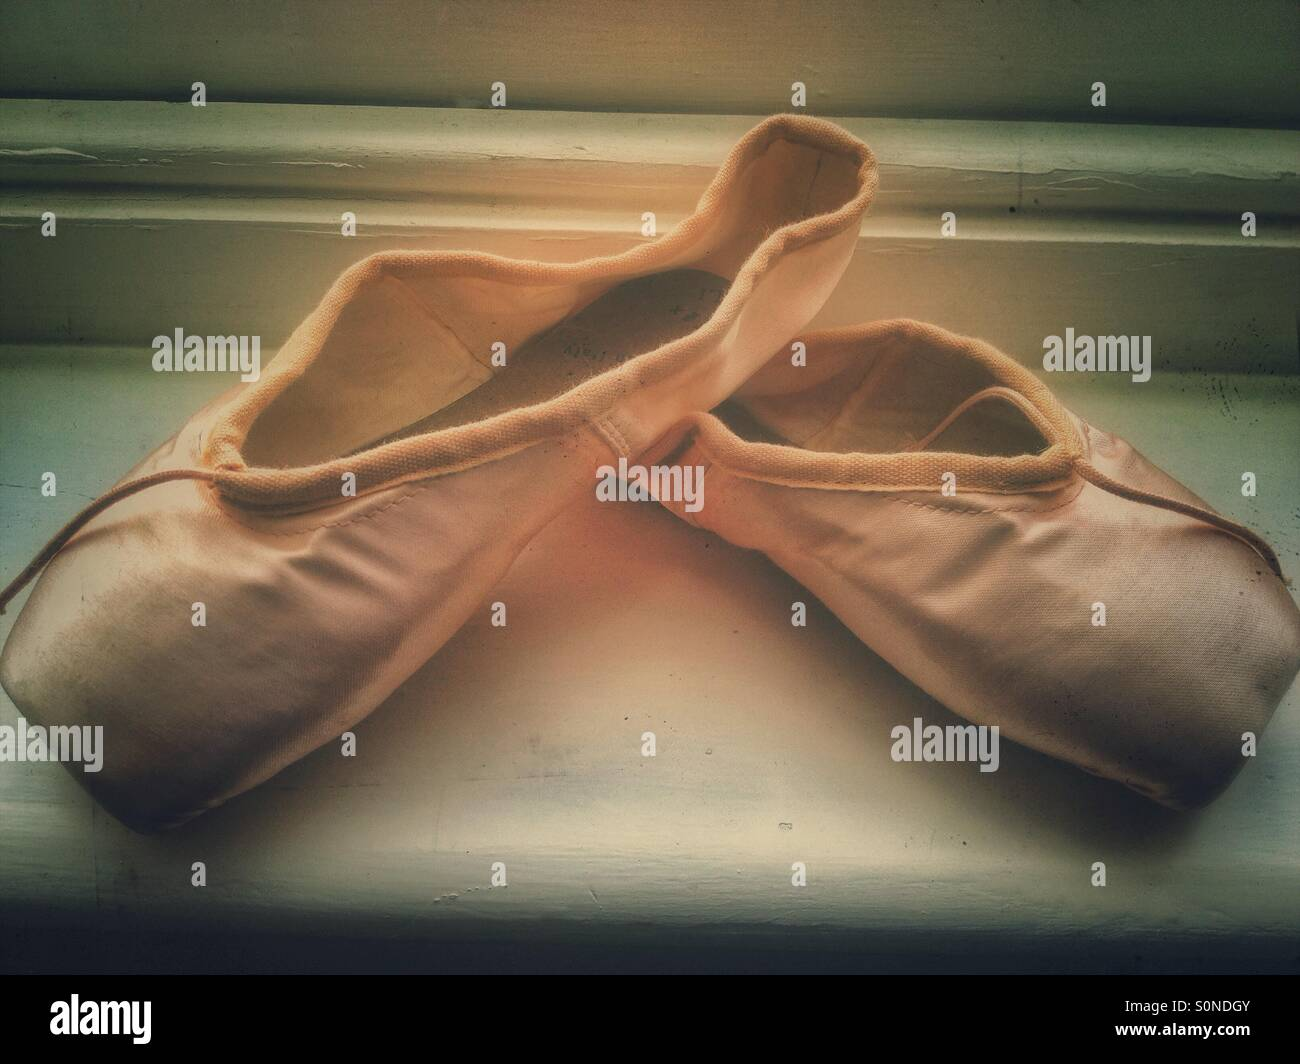 A pair of people no ballet shoes on a window sill. - Stock Image